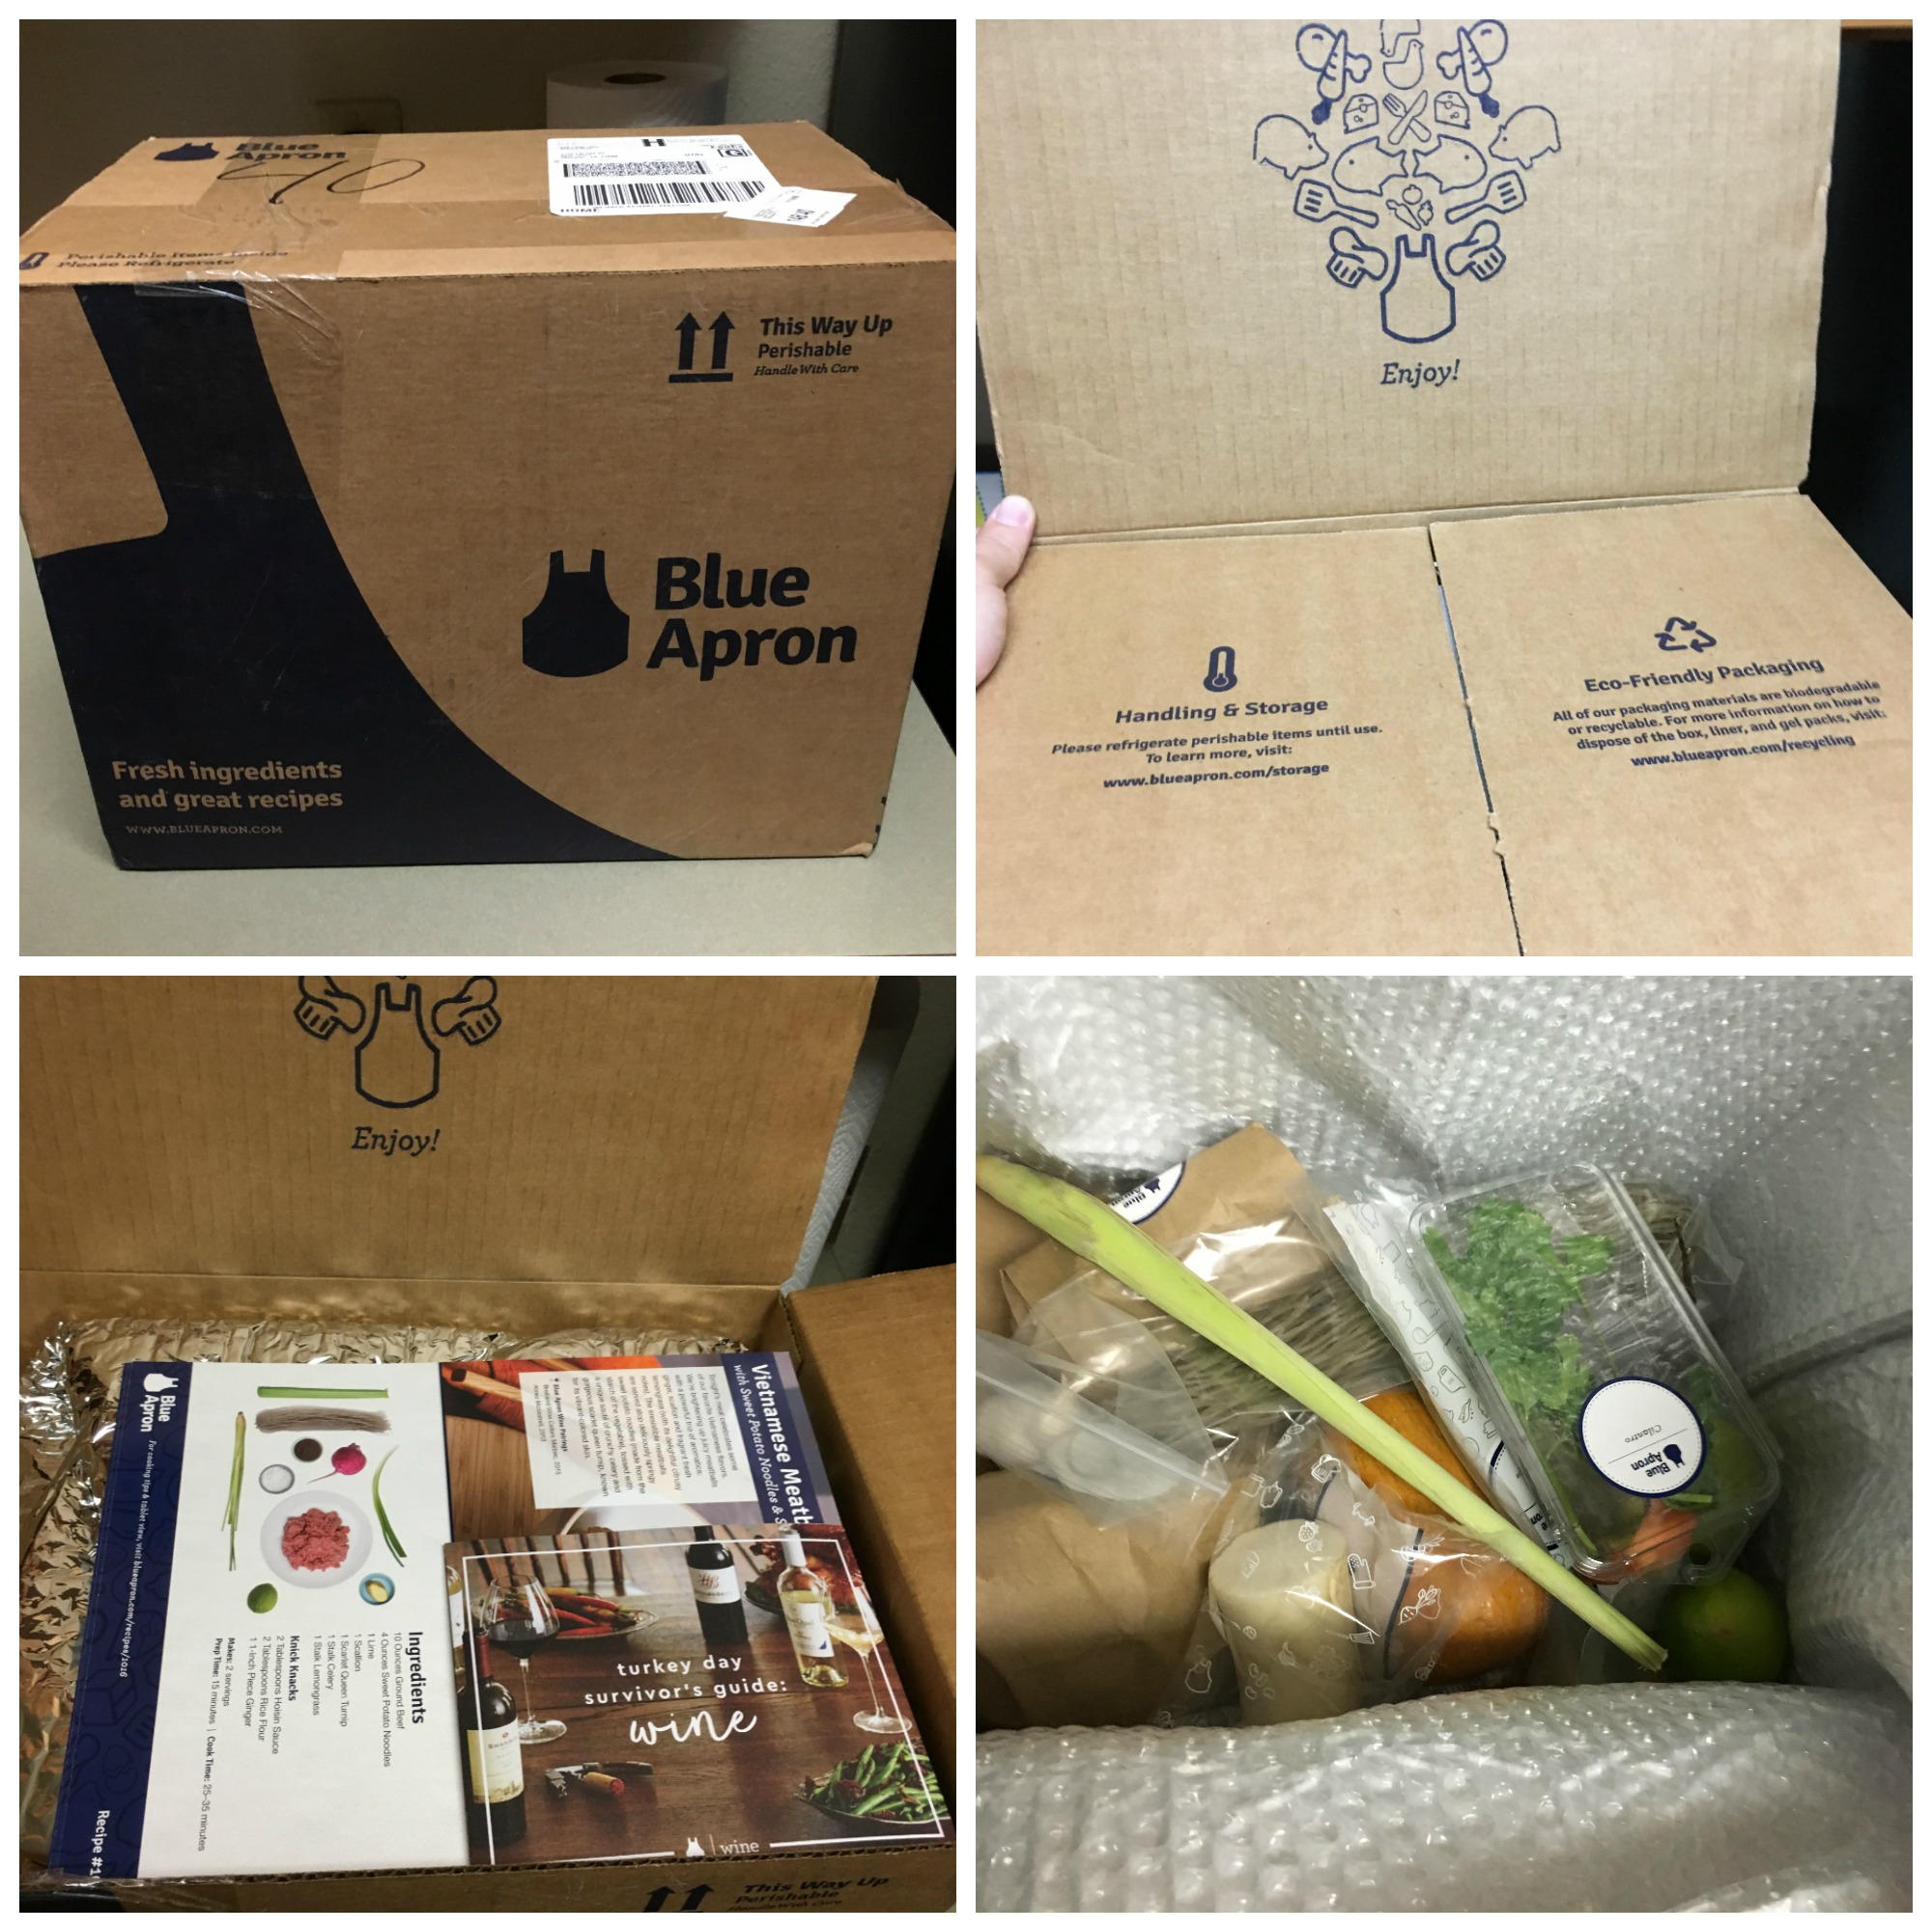 Blue apron packaging - Save